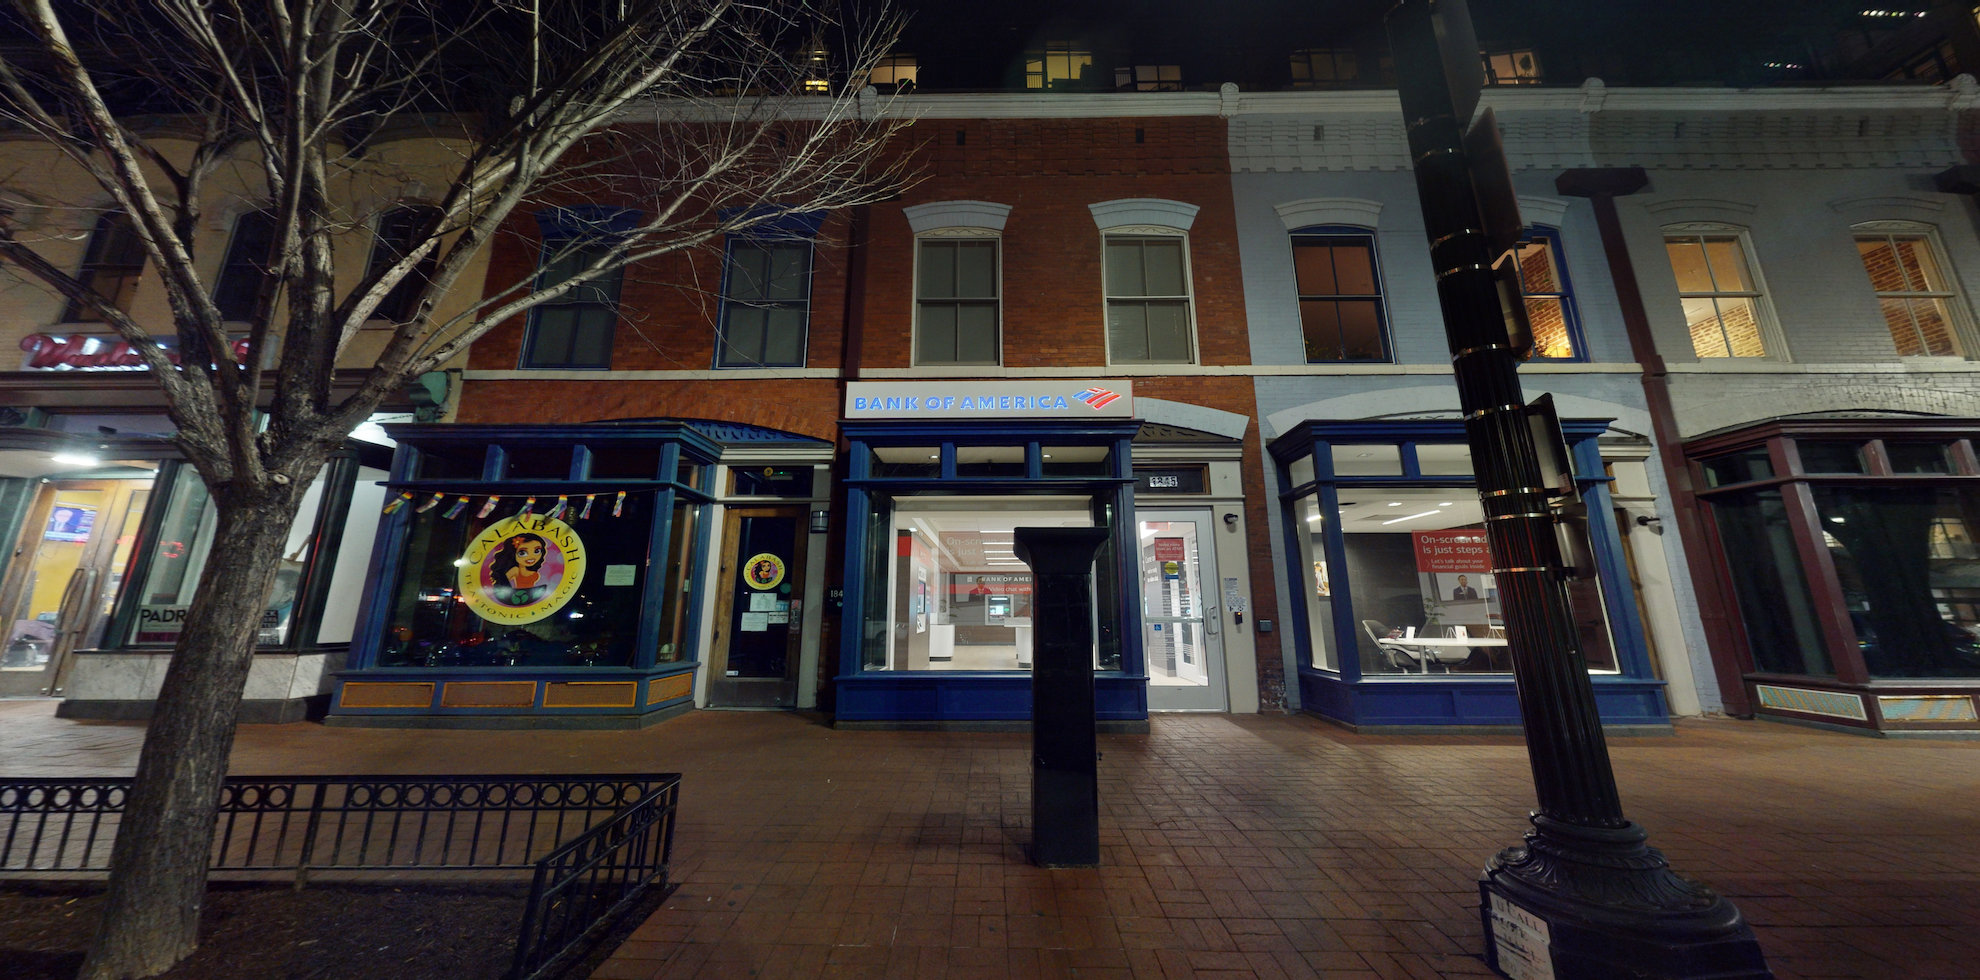 Bank of America Advanced Center with walk-up ATM | 1845 7th St NW, Washington, DC 20001